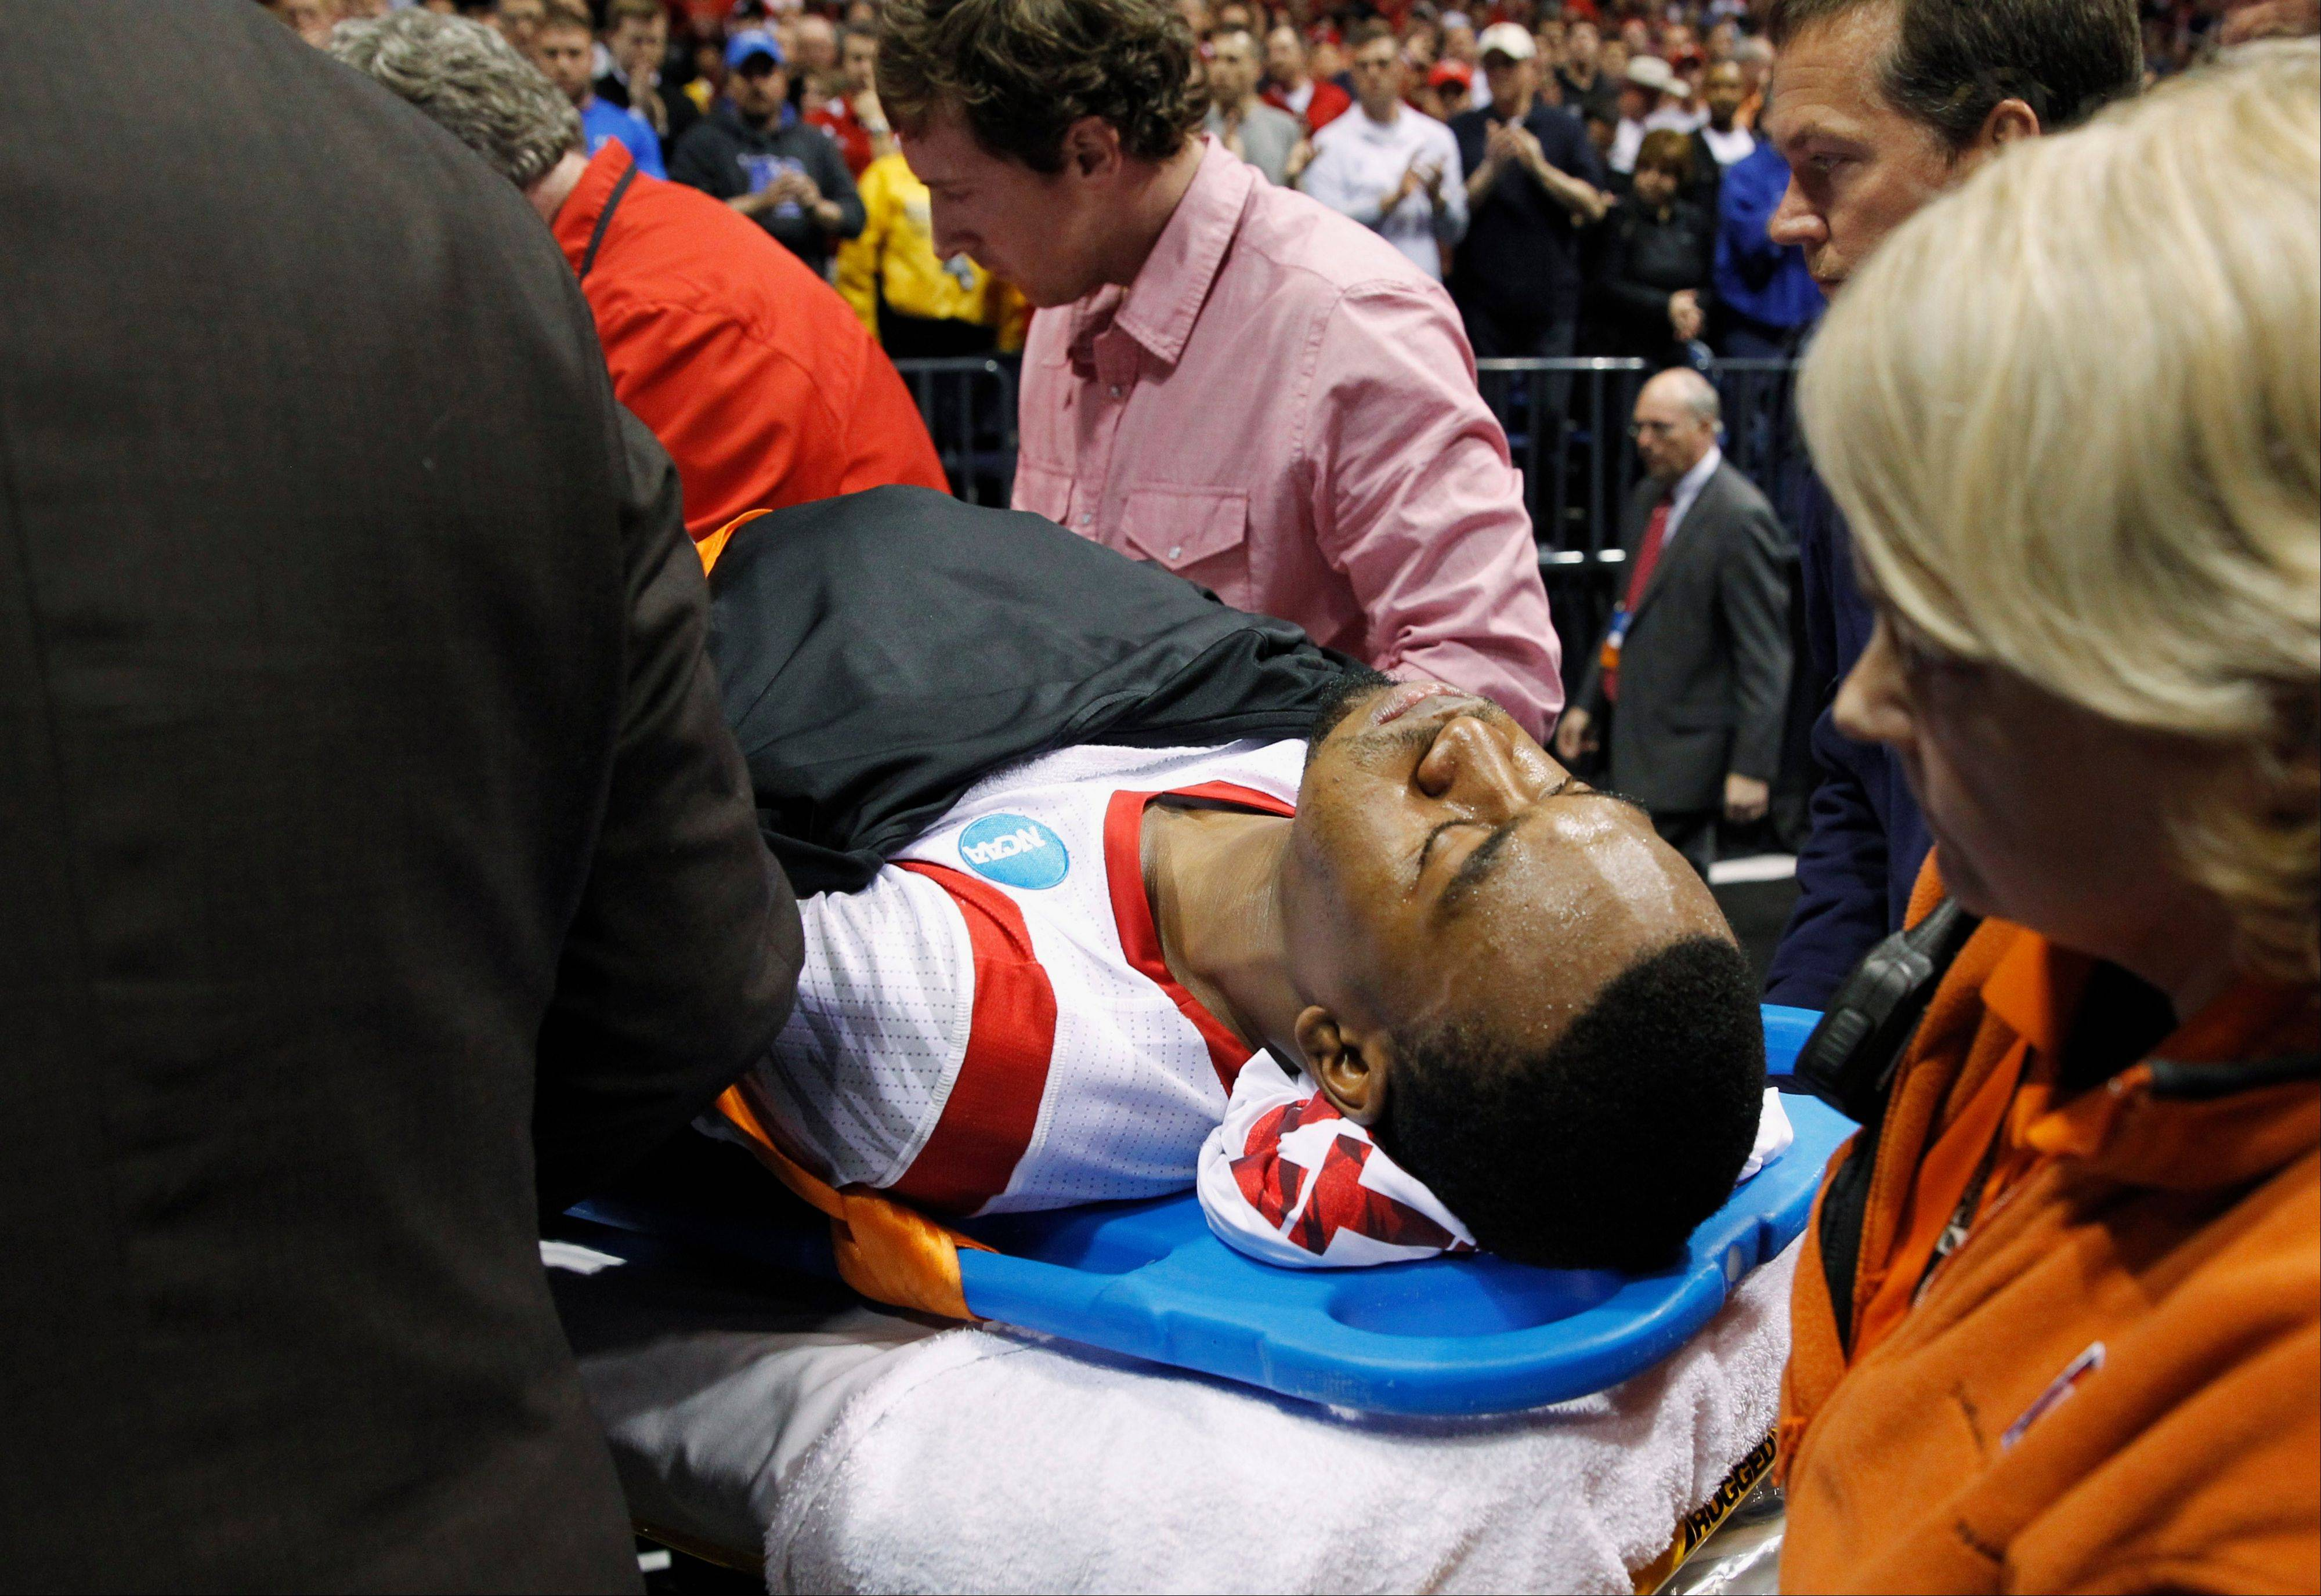 Louisville guard Kevin Ware is taken off of the court on a stretcher after his injury during the first half of the Midwest Regional final against Duke in the NCAA college basketball tournament Sunday.